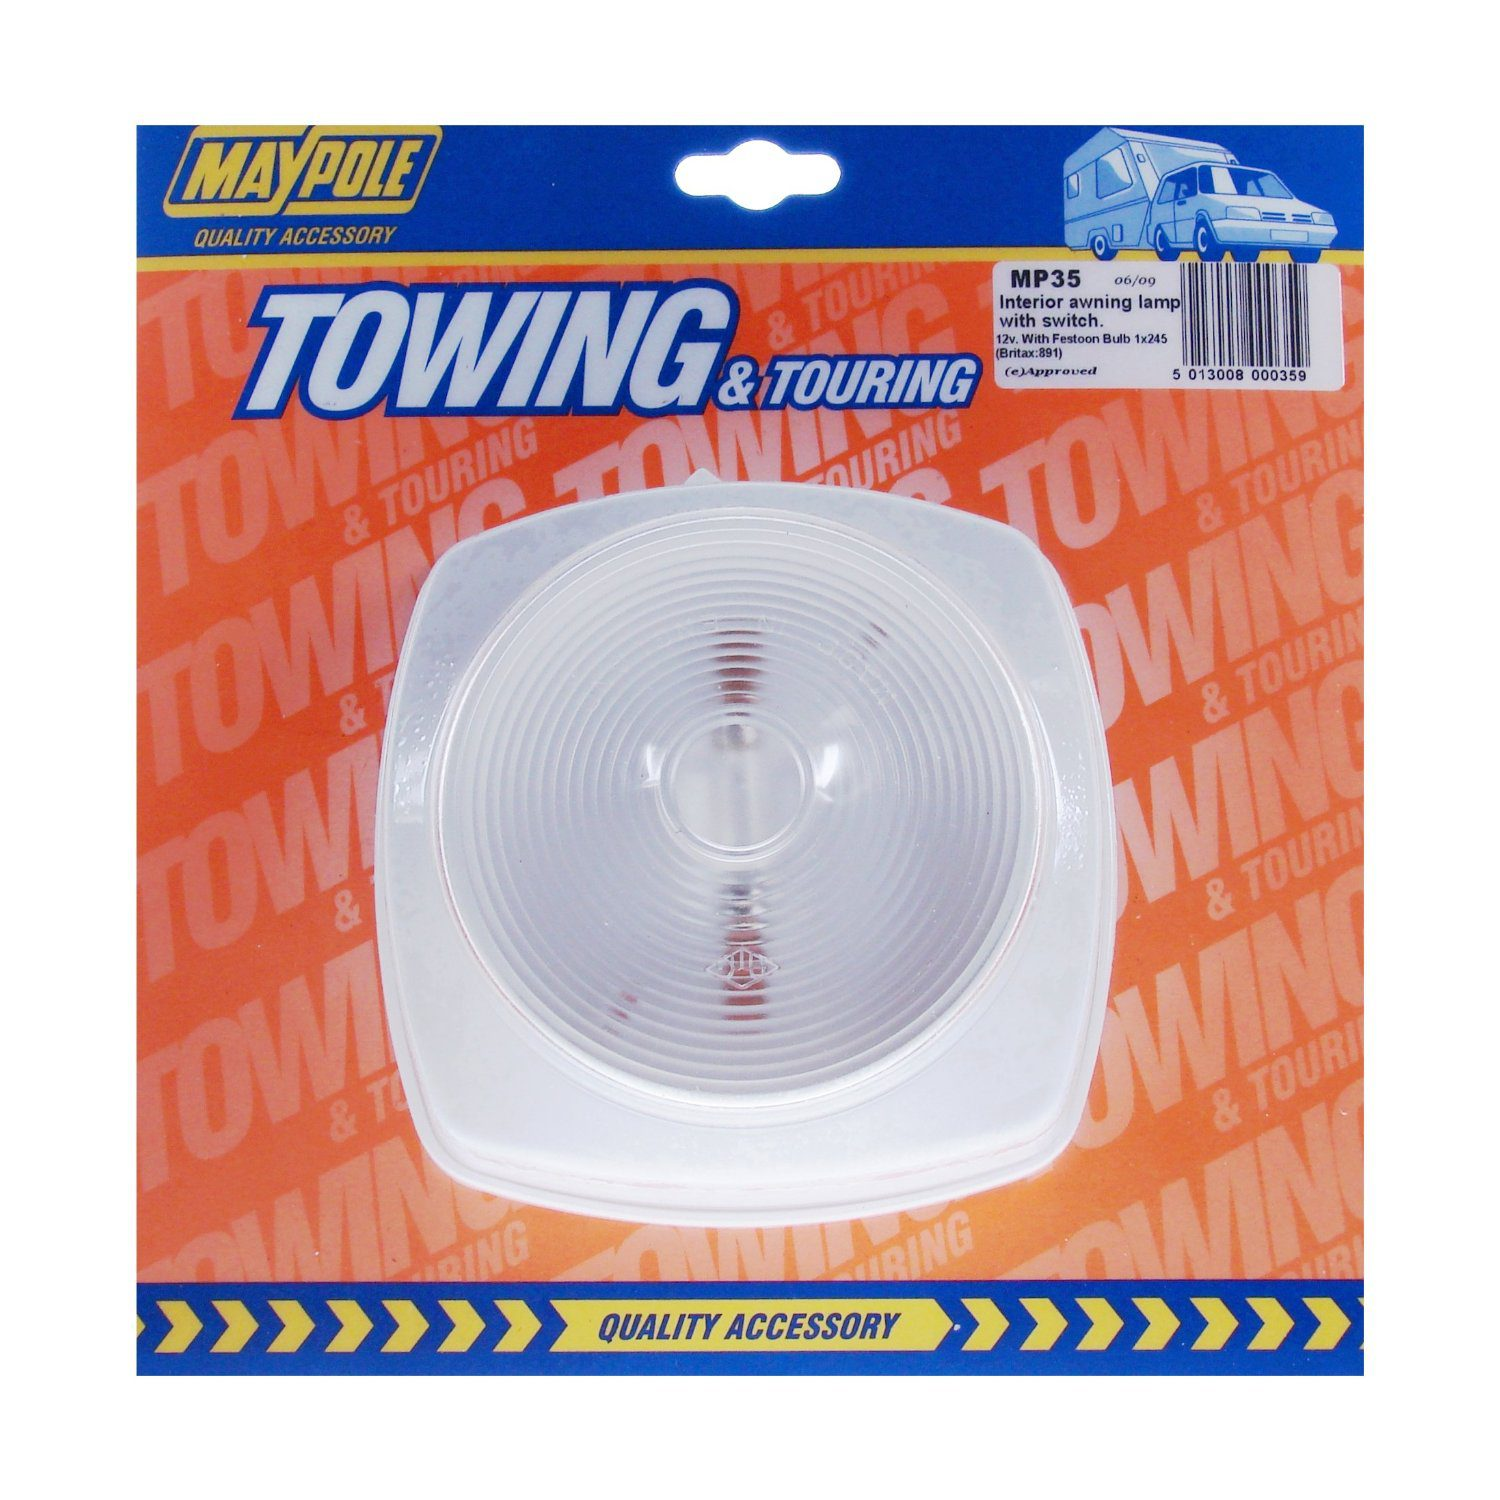 Maypole MP35 - Interior Awning Lamp with Switch